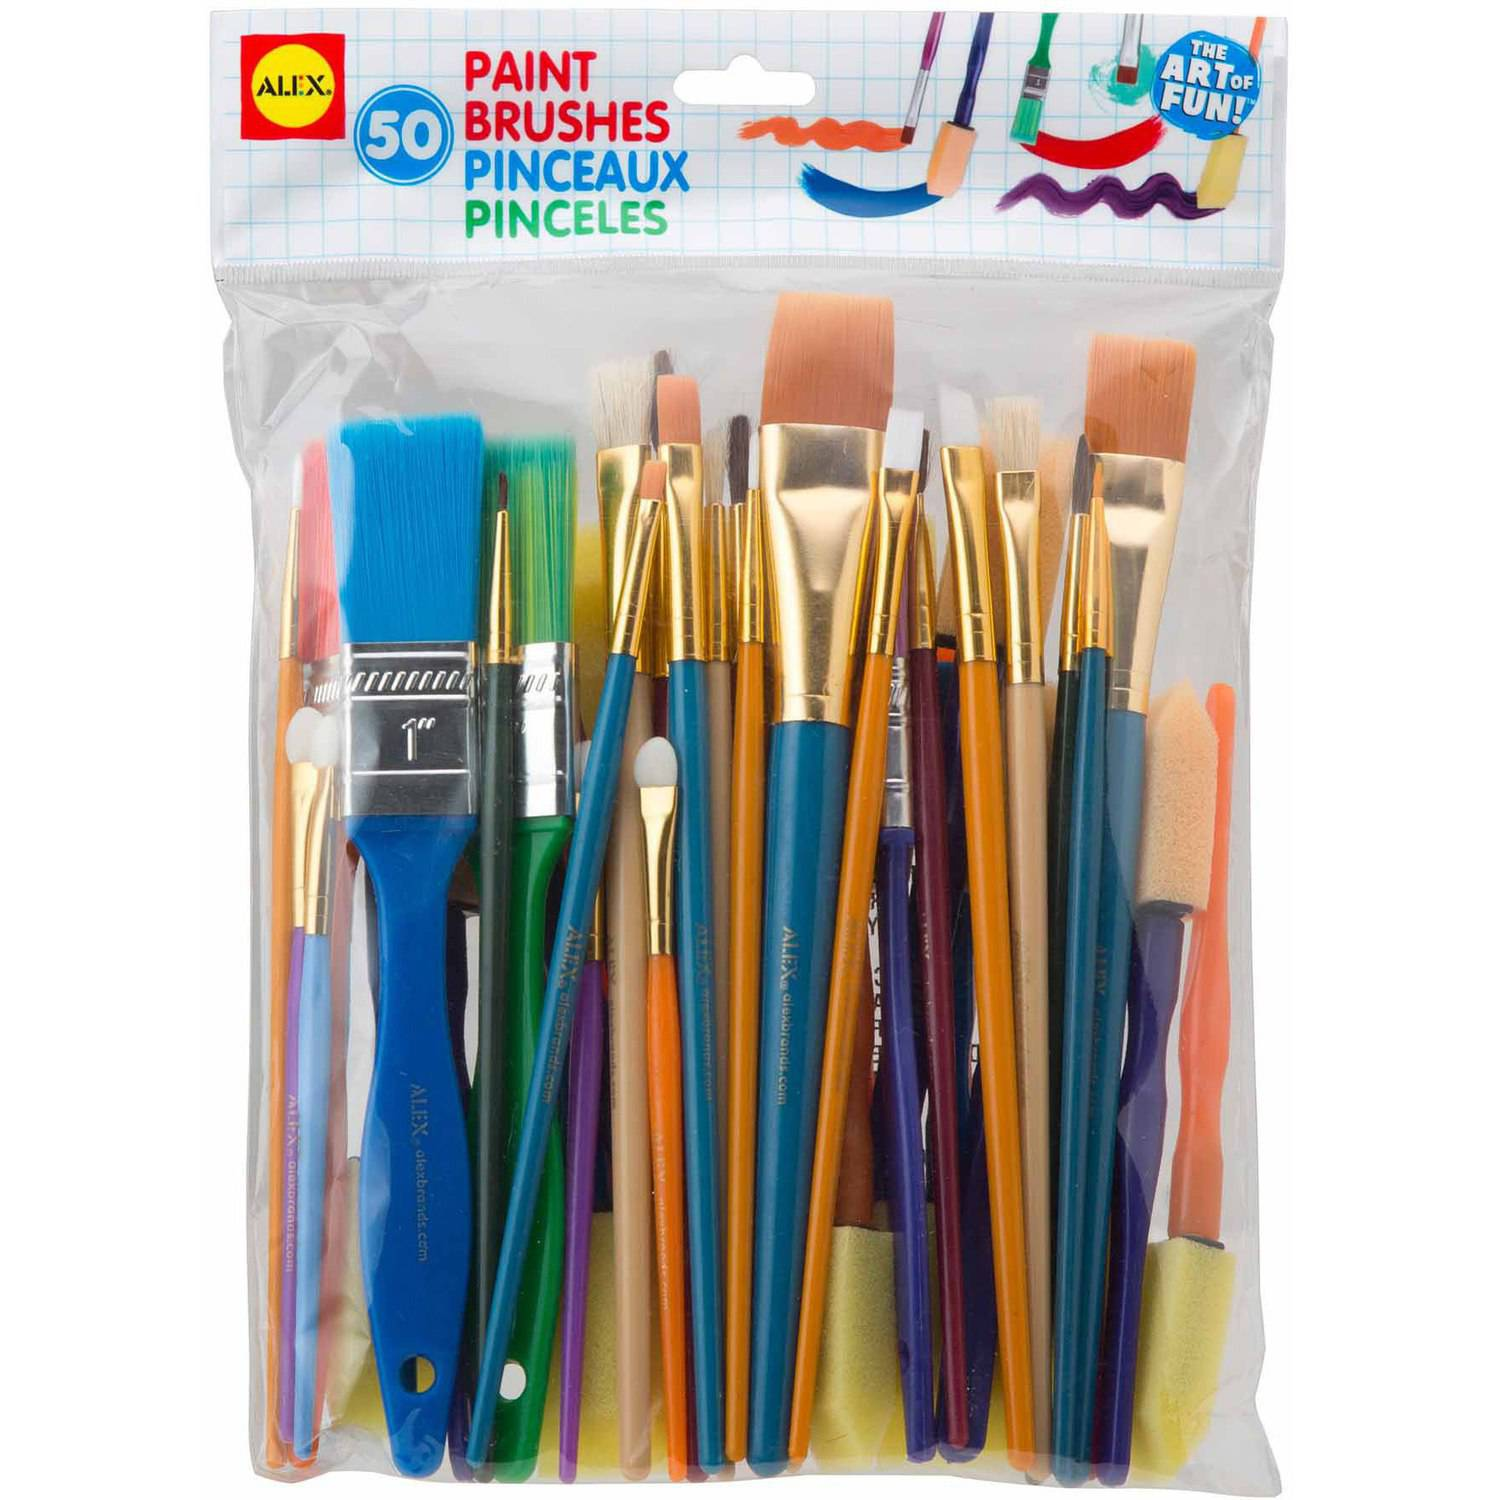 ALEX Toys Artist Studio Paint Brushes Set of 50 by Alex Brands